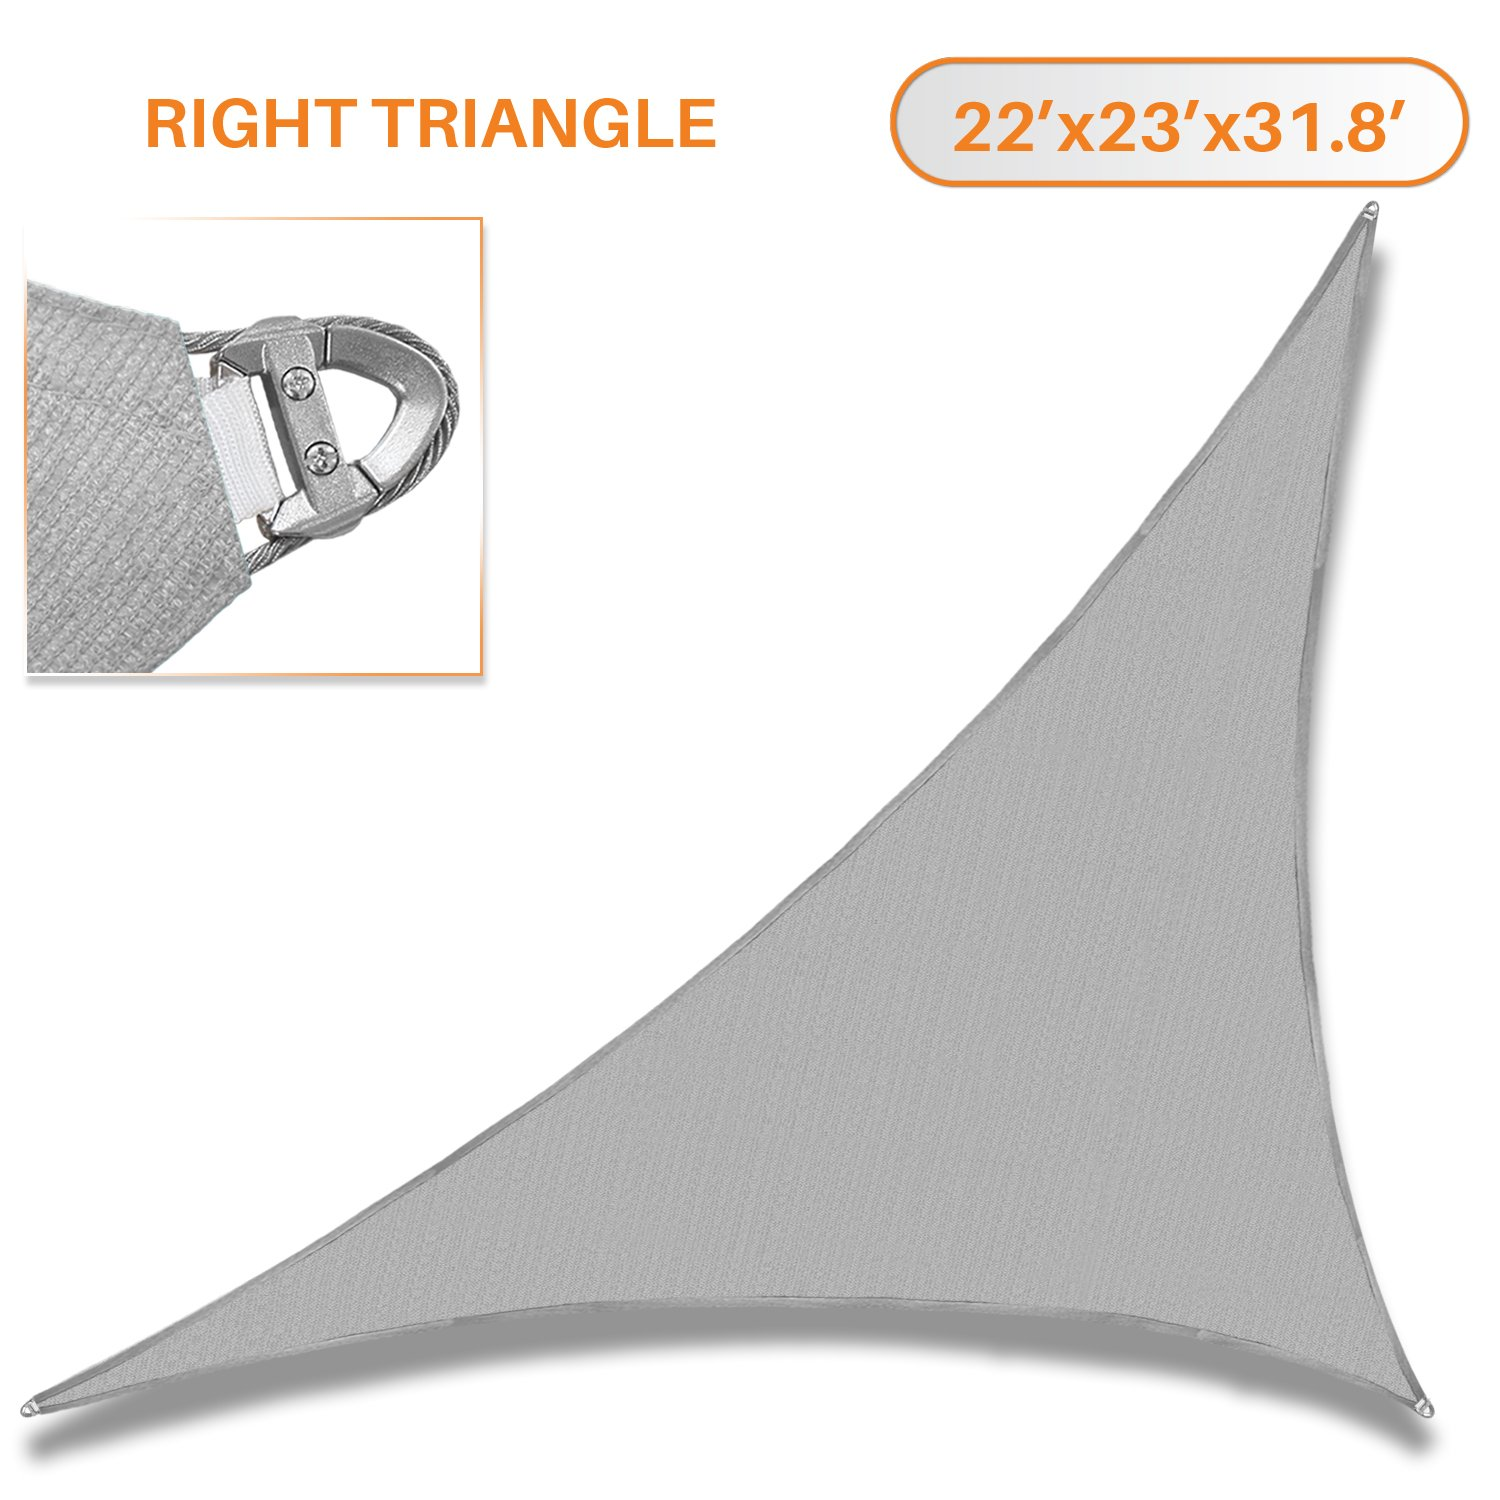 Sunshades Depot A Ring Design Steel Cable Wire Reinforcement 22' x 23' x 31.8' Right Triangle Sun Shade Sails Light Gray Heavy Duty Permeable 260 GSM